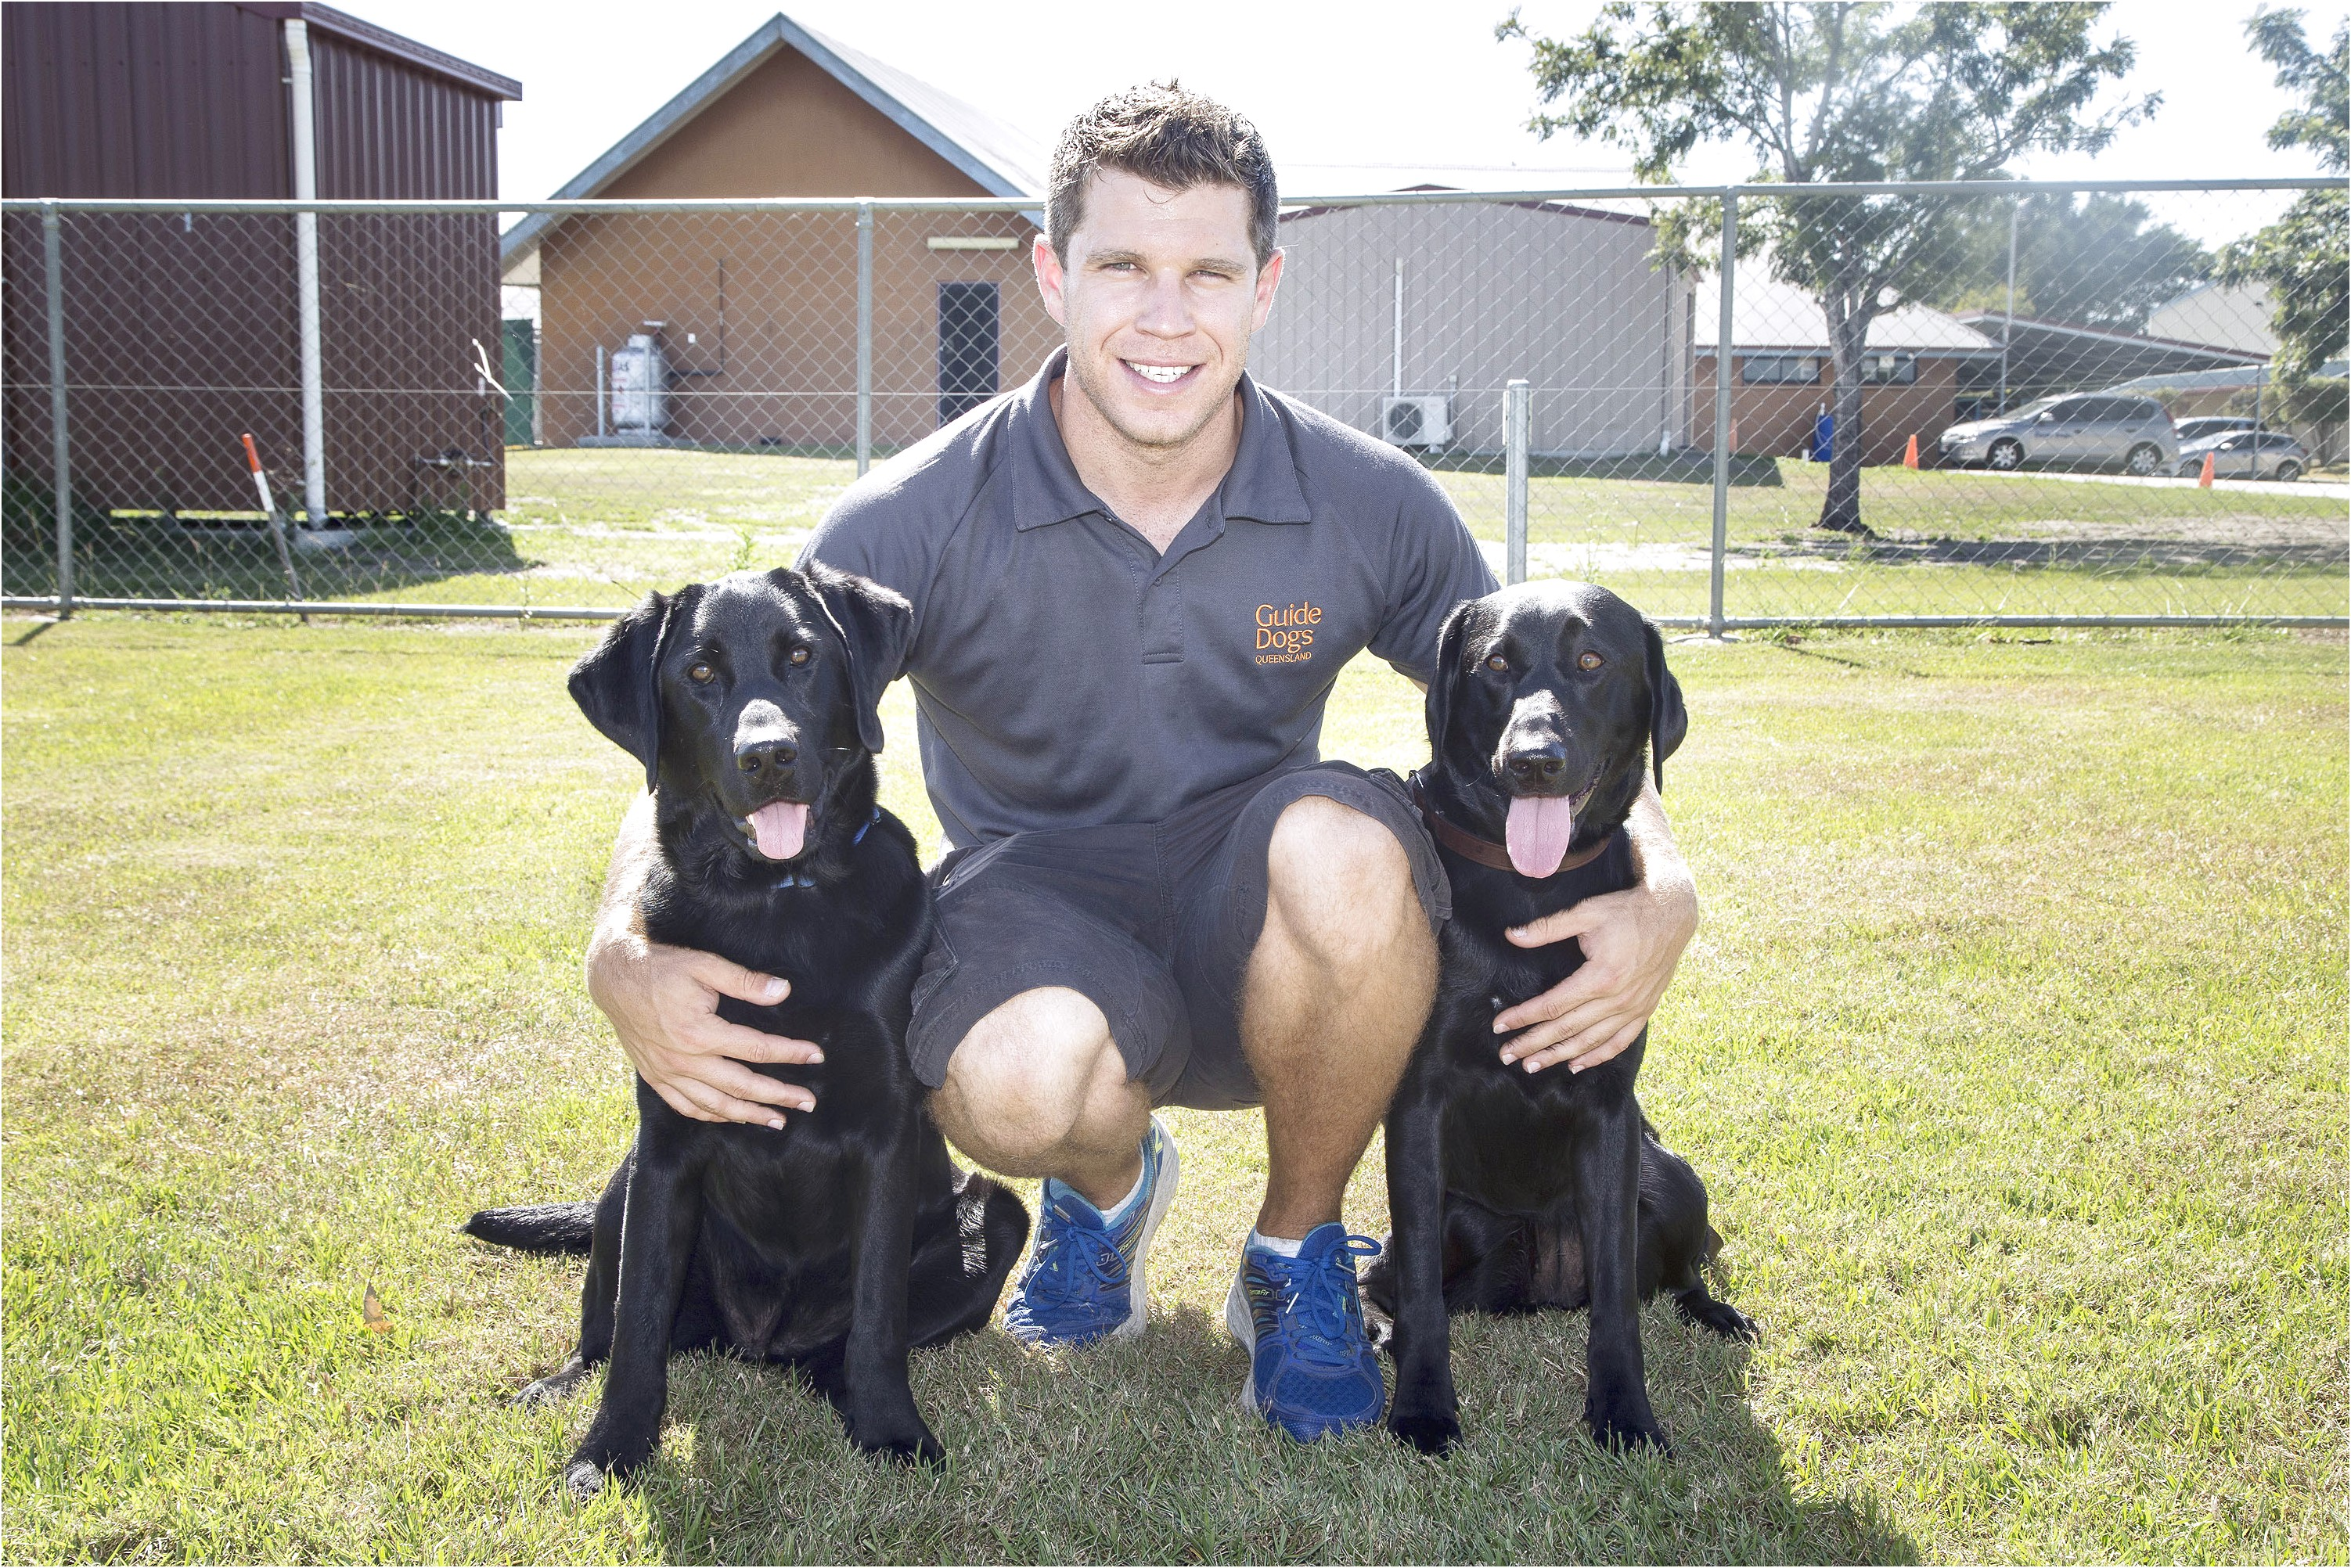 guide dog training schools near me